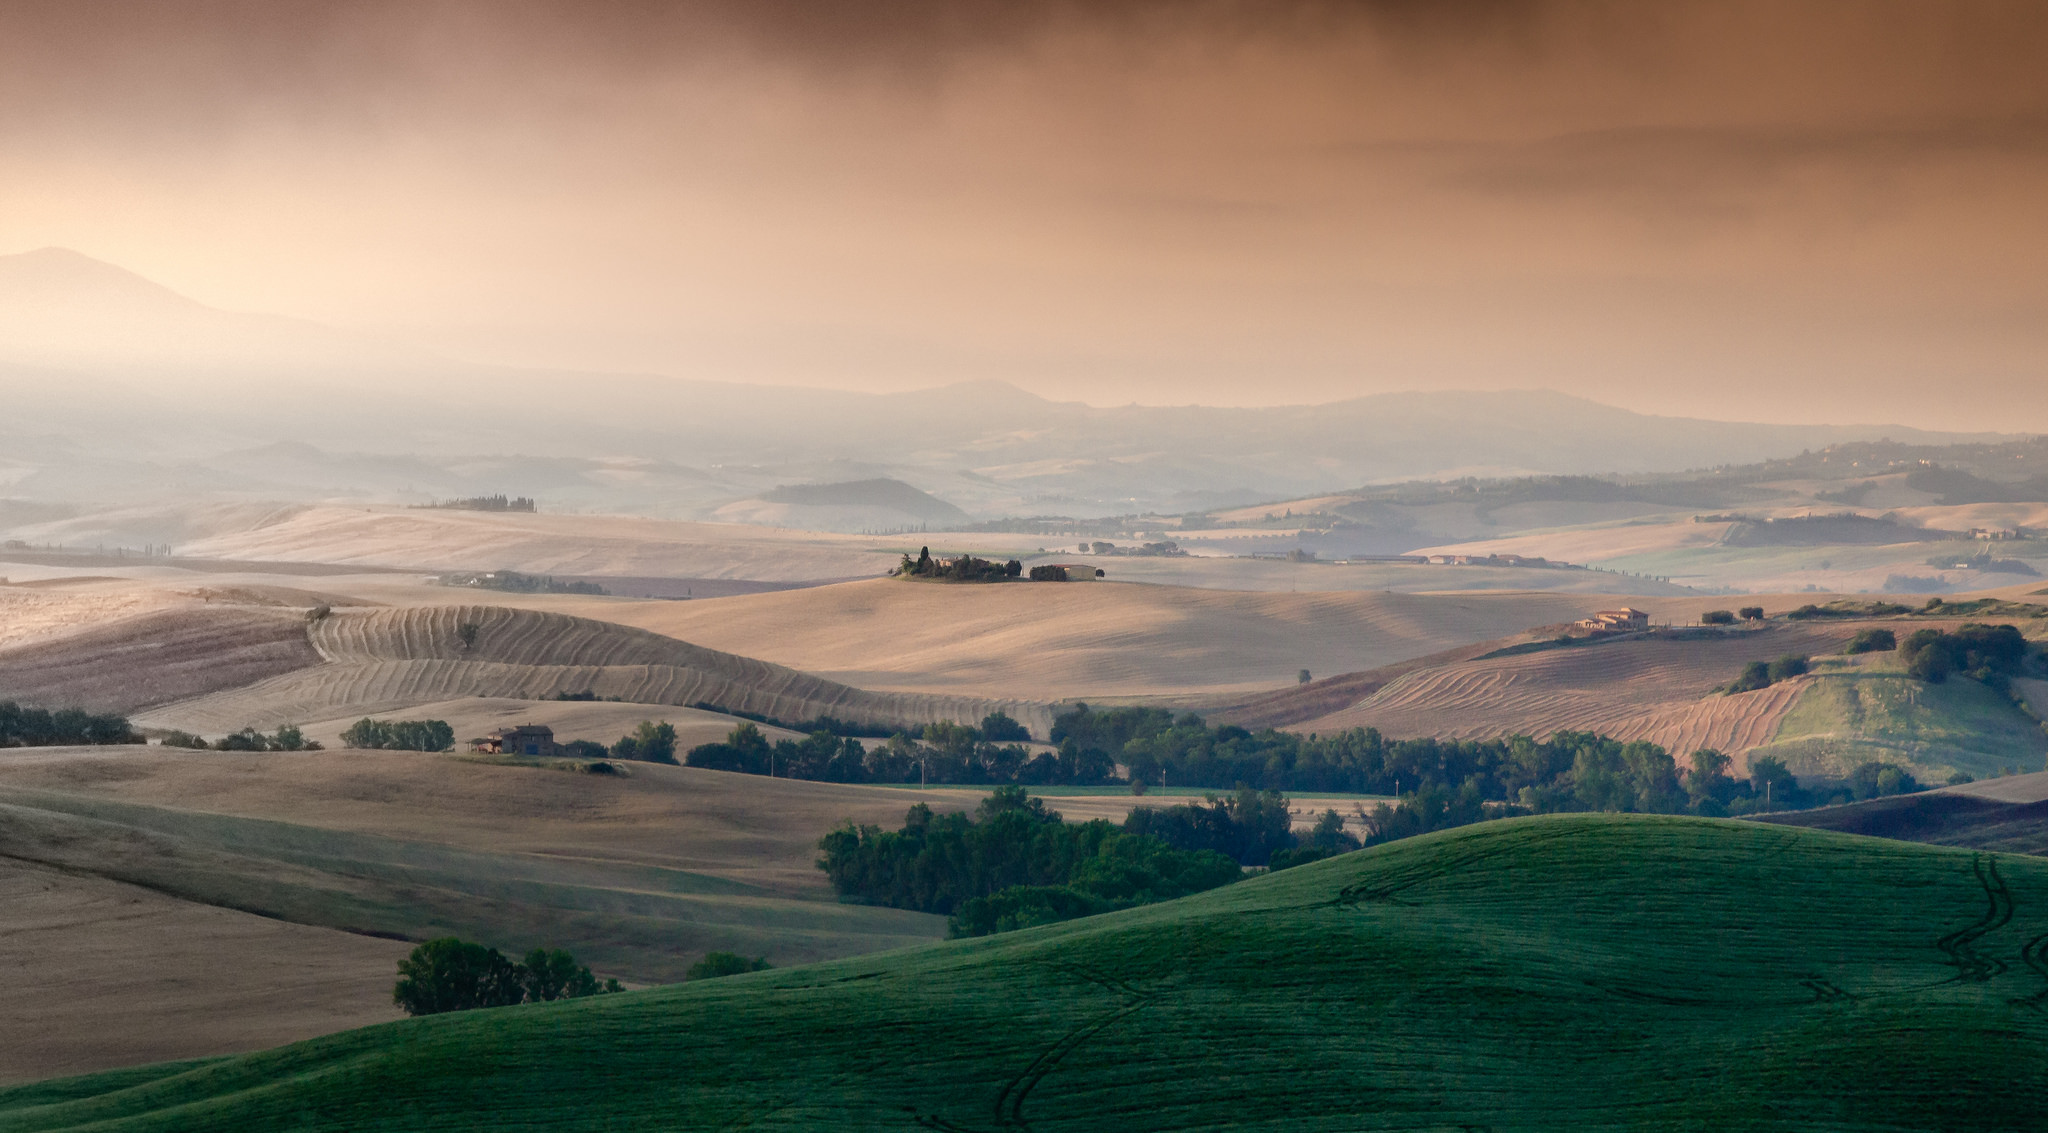 Val d' Orcia in Tuscany